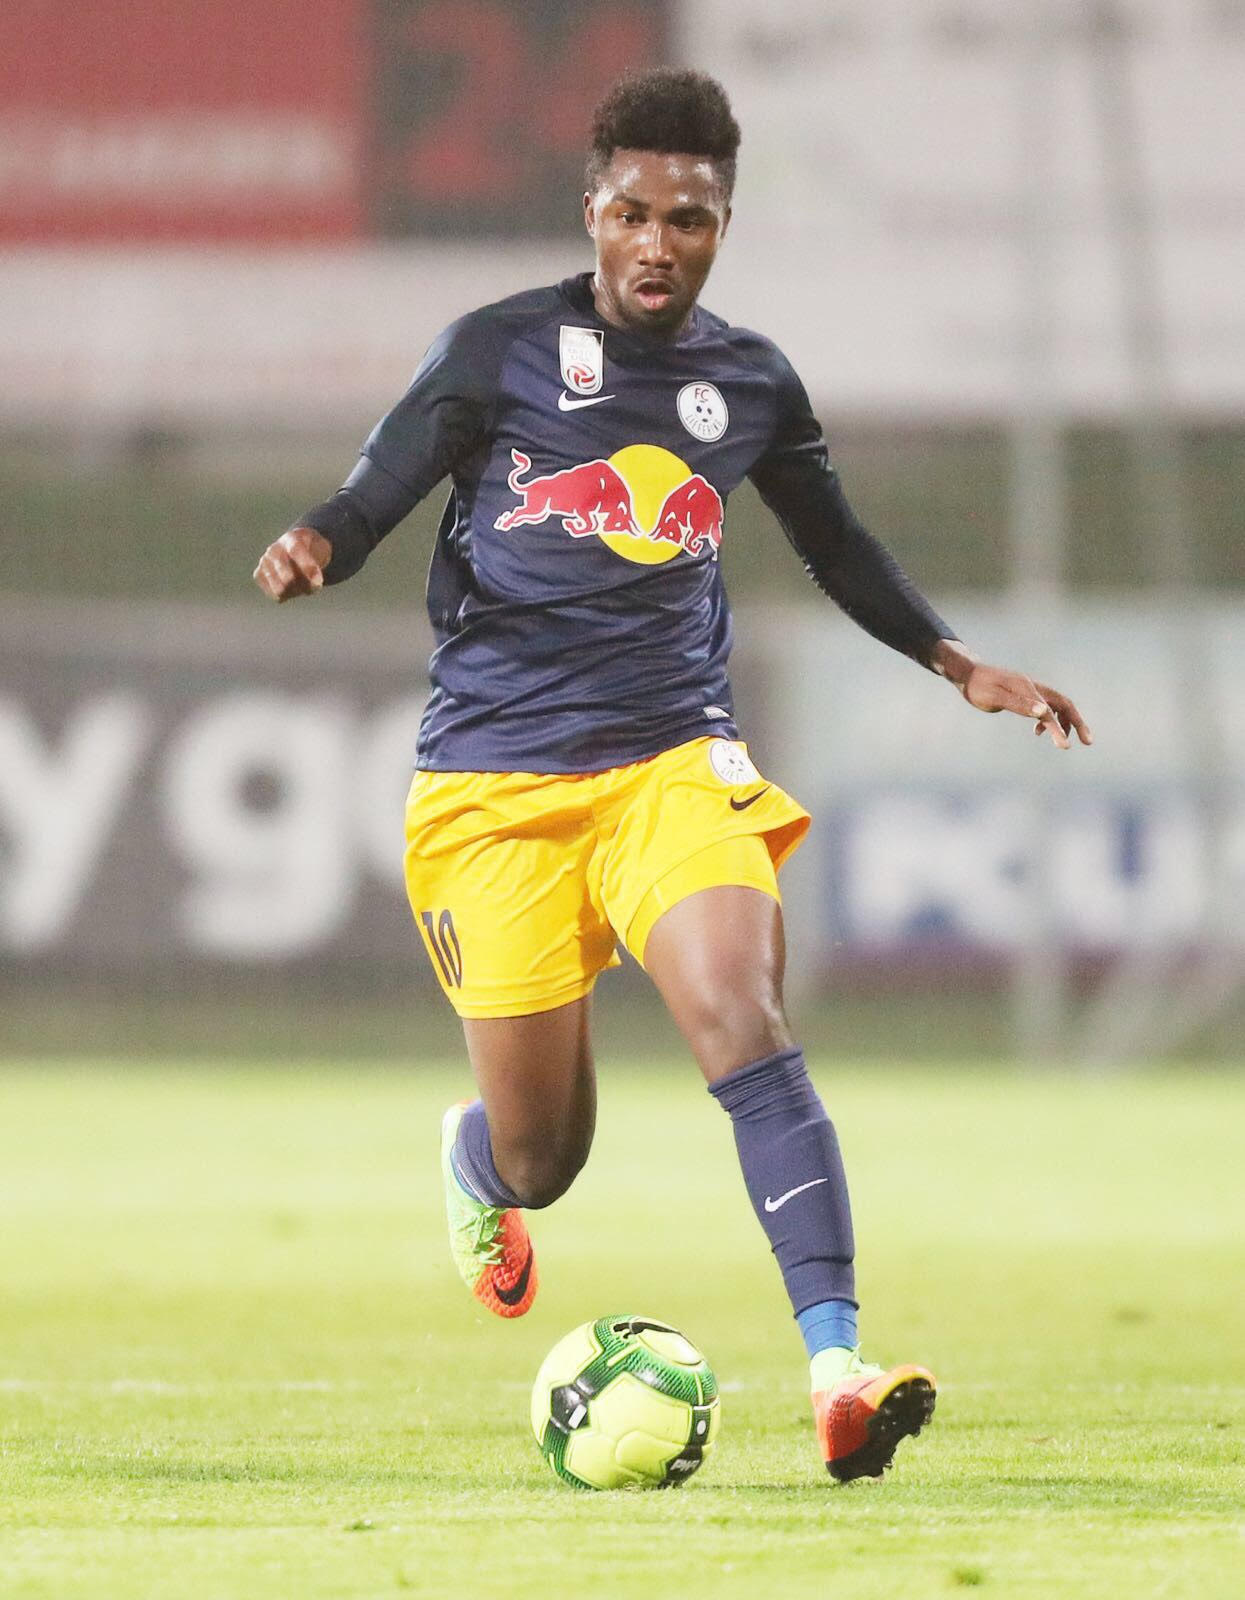 Samuel Tetteh continues rise to the top with another SIXTY minutes of action for Liefering